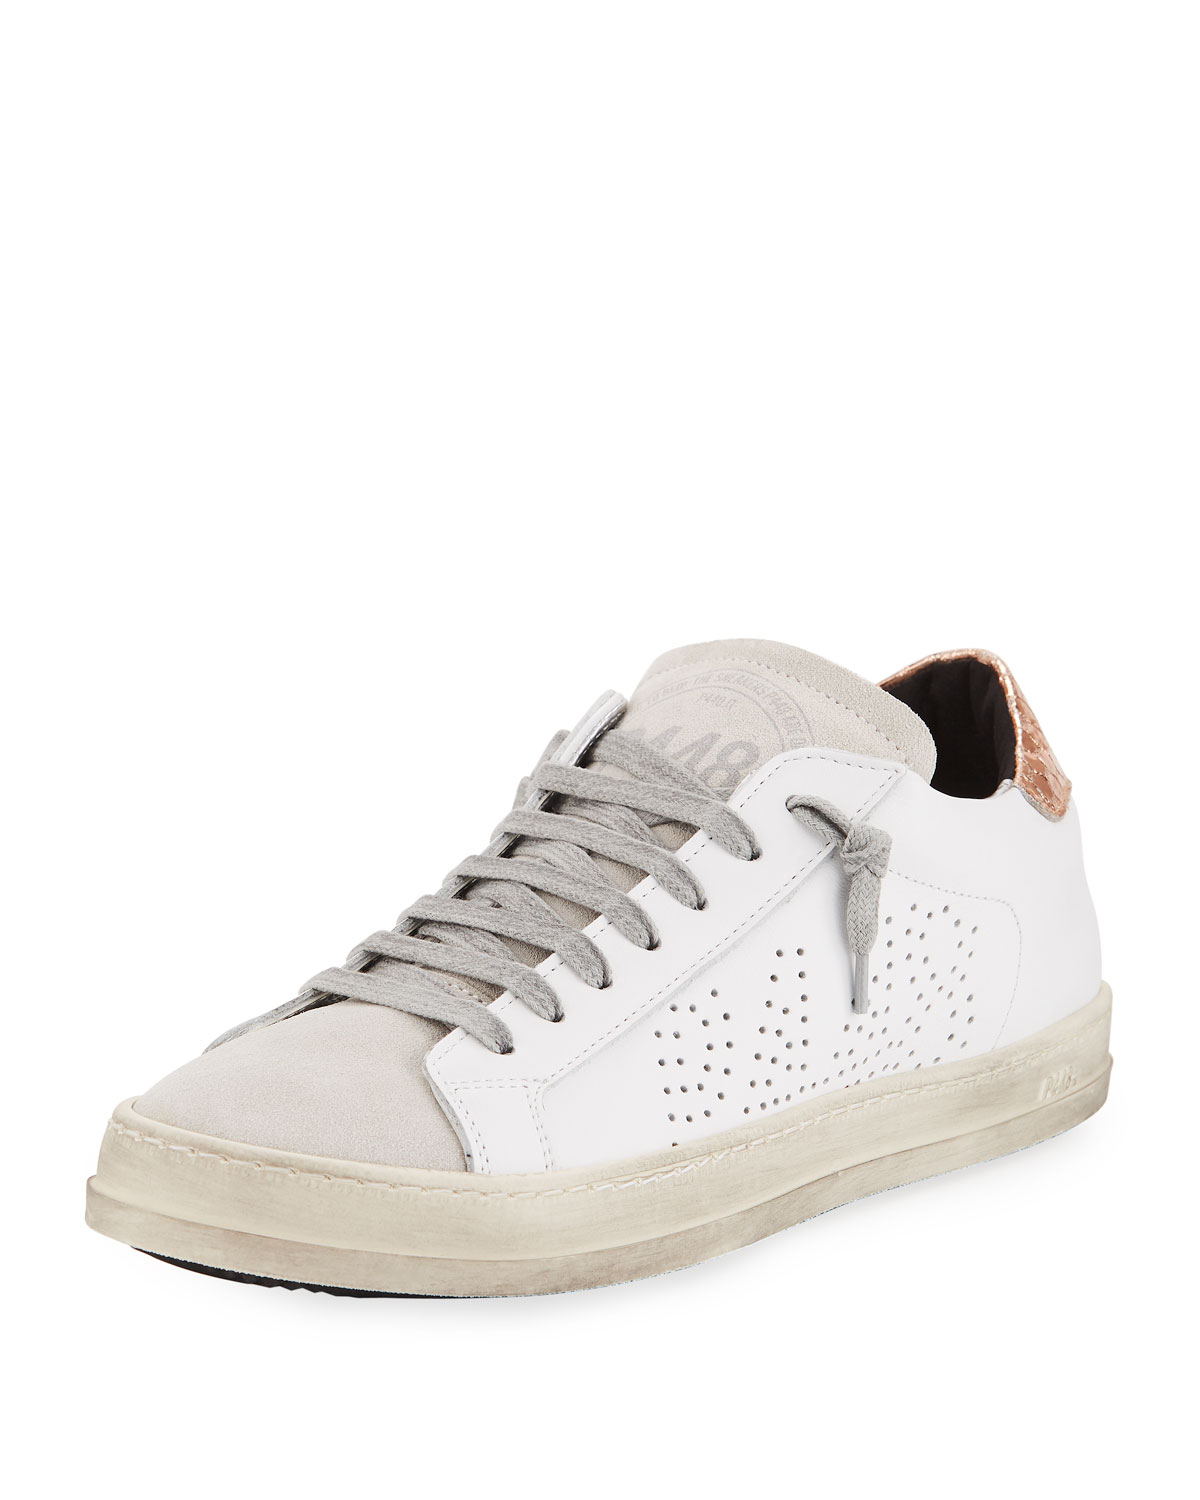 d0b7fd7ad66 P448 John Mixed Leather Low-Top Sneakers, White/Copper | Neiman Marcus